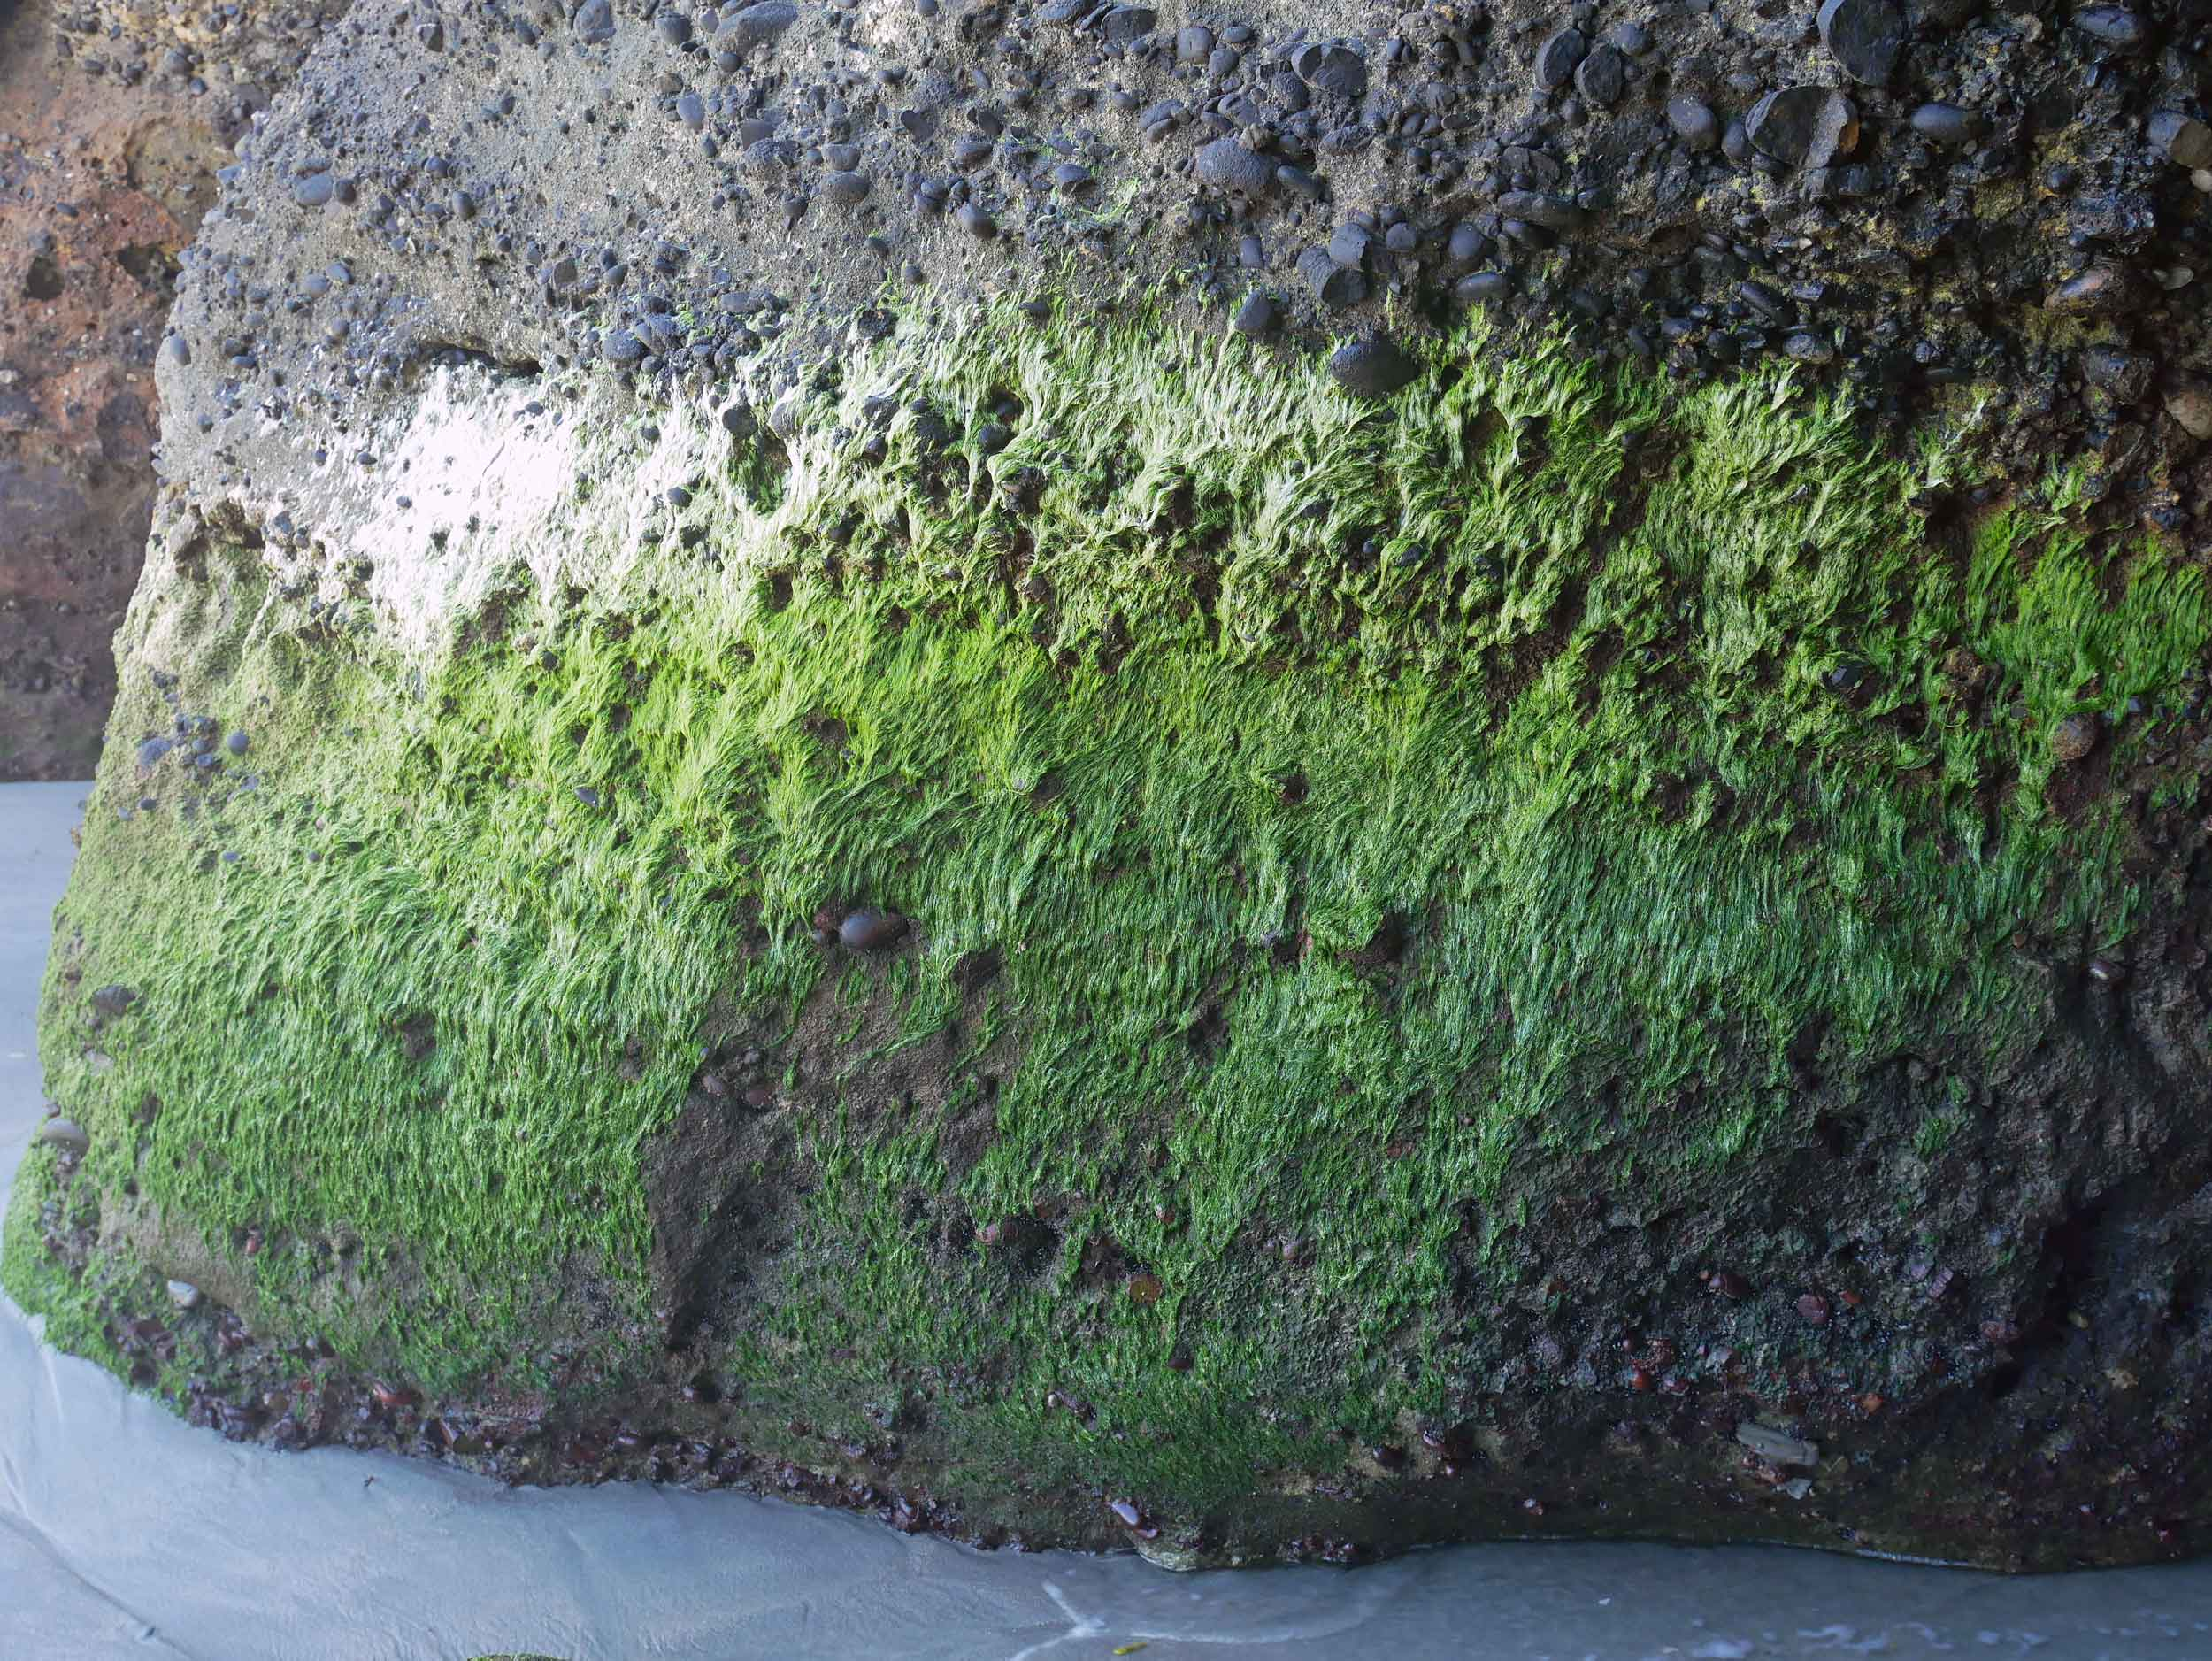 The ombre mossy greens covering the giant rocks along Wharariki Beach (Jan 13).